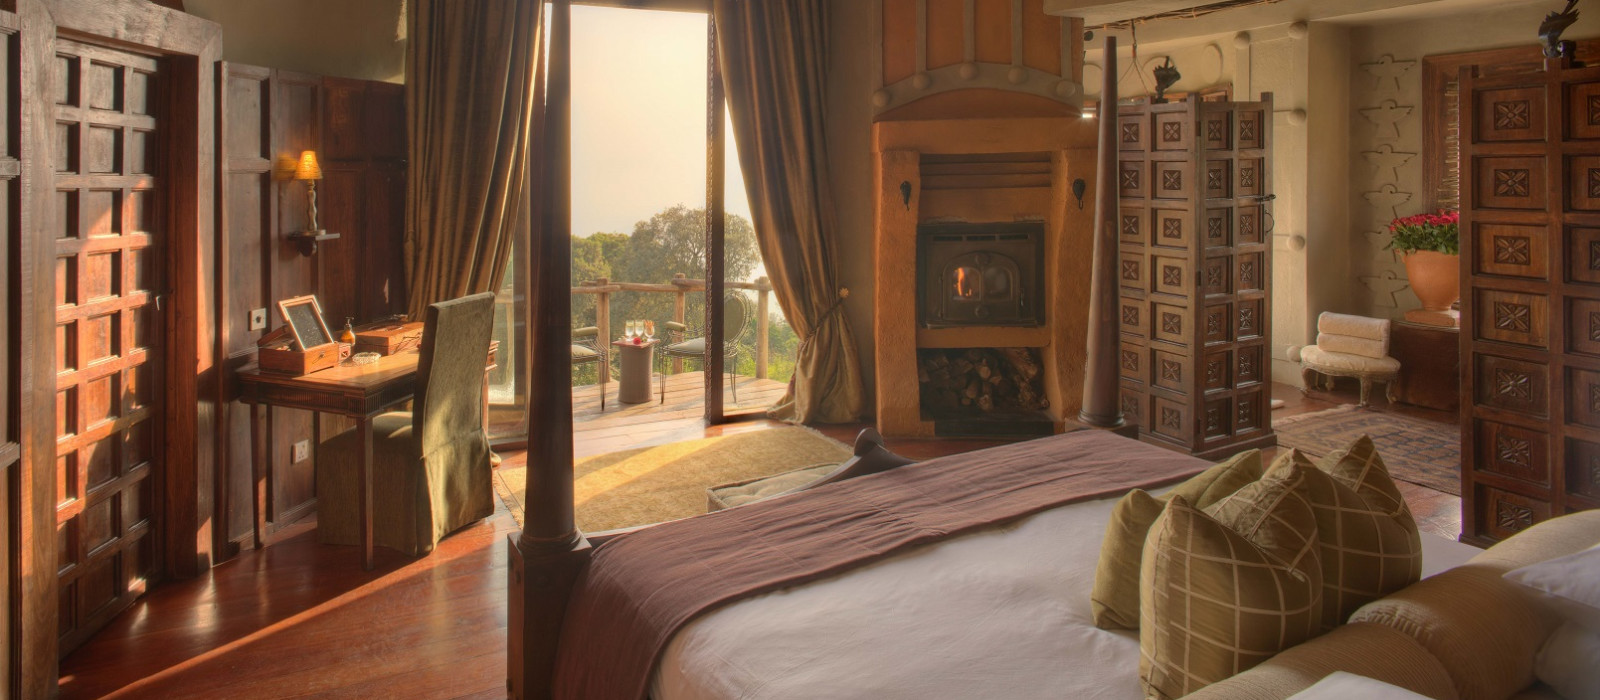 Hotel Ngorongoro Crater Lodge %region%